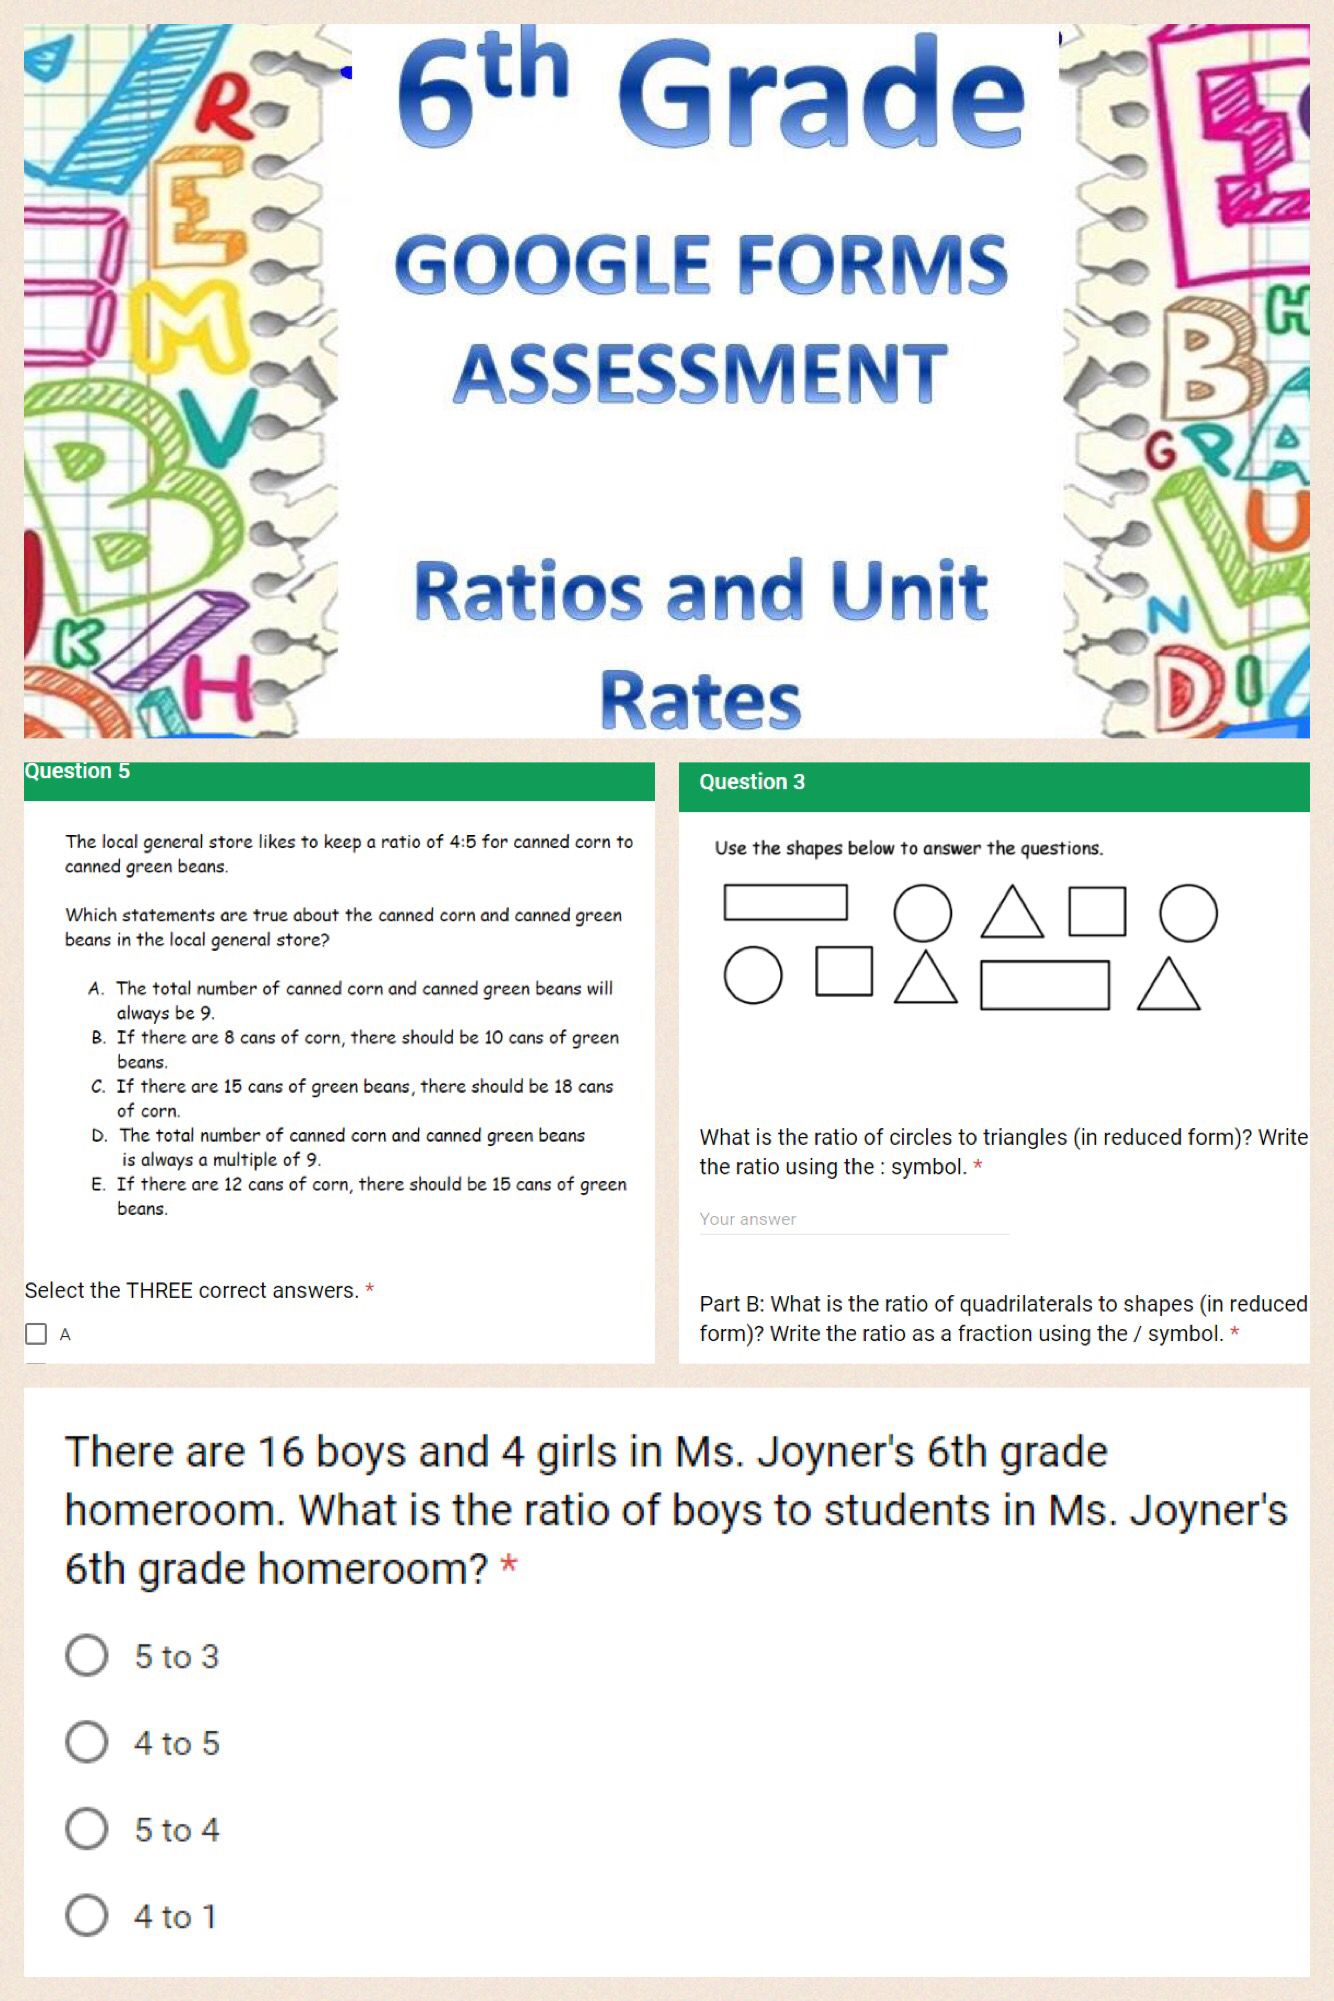 6th Grade Ratios And Unit Rates Forms Assessment